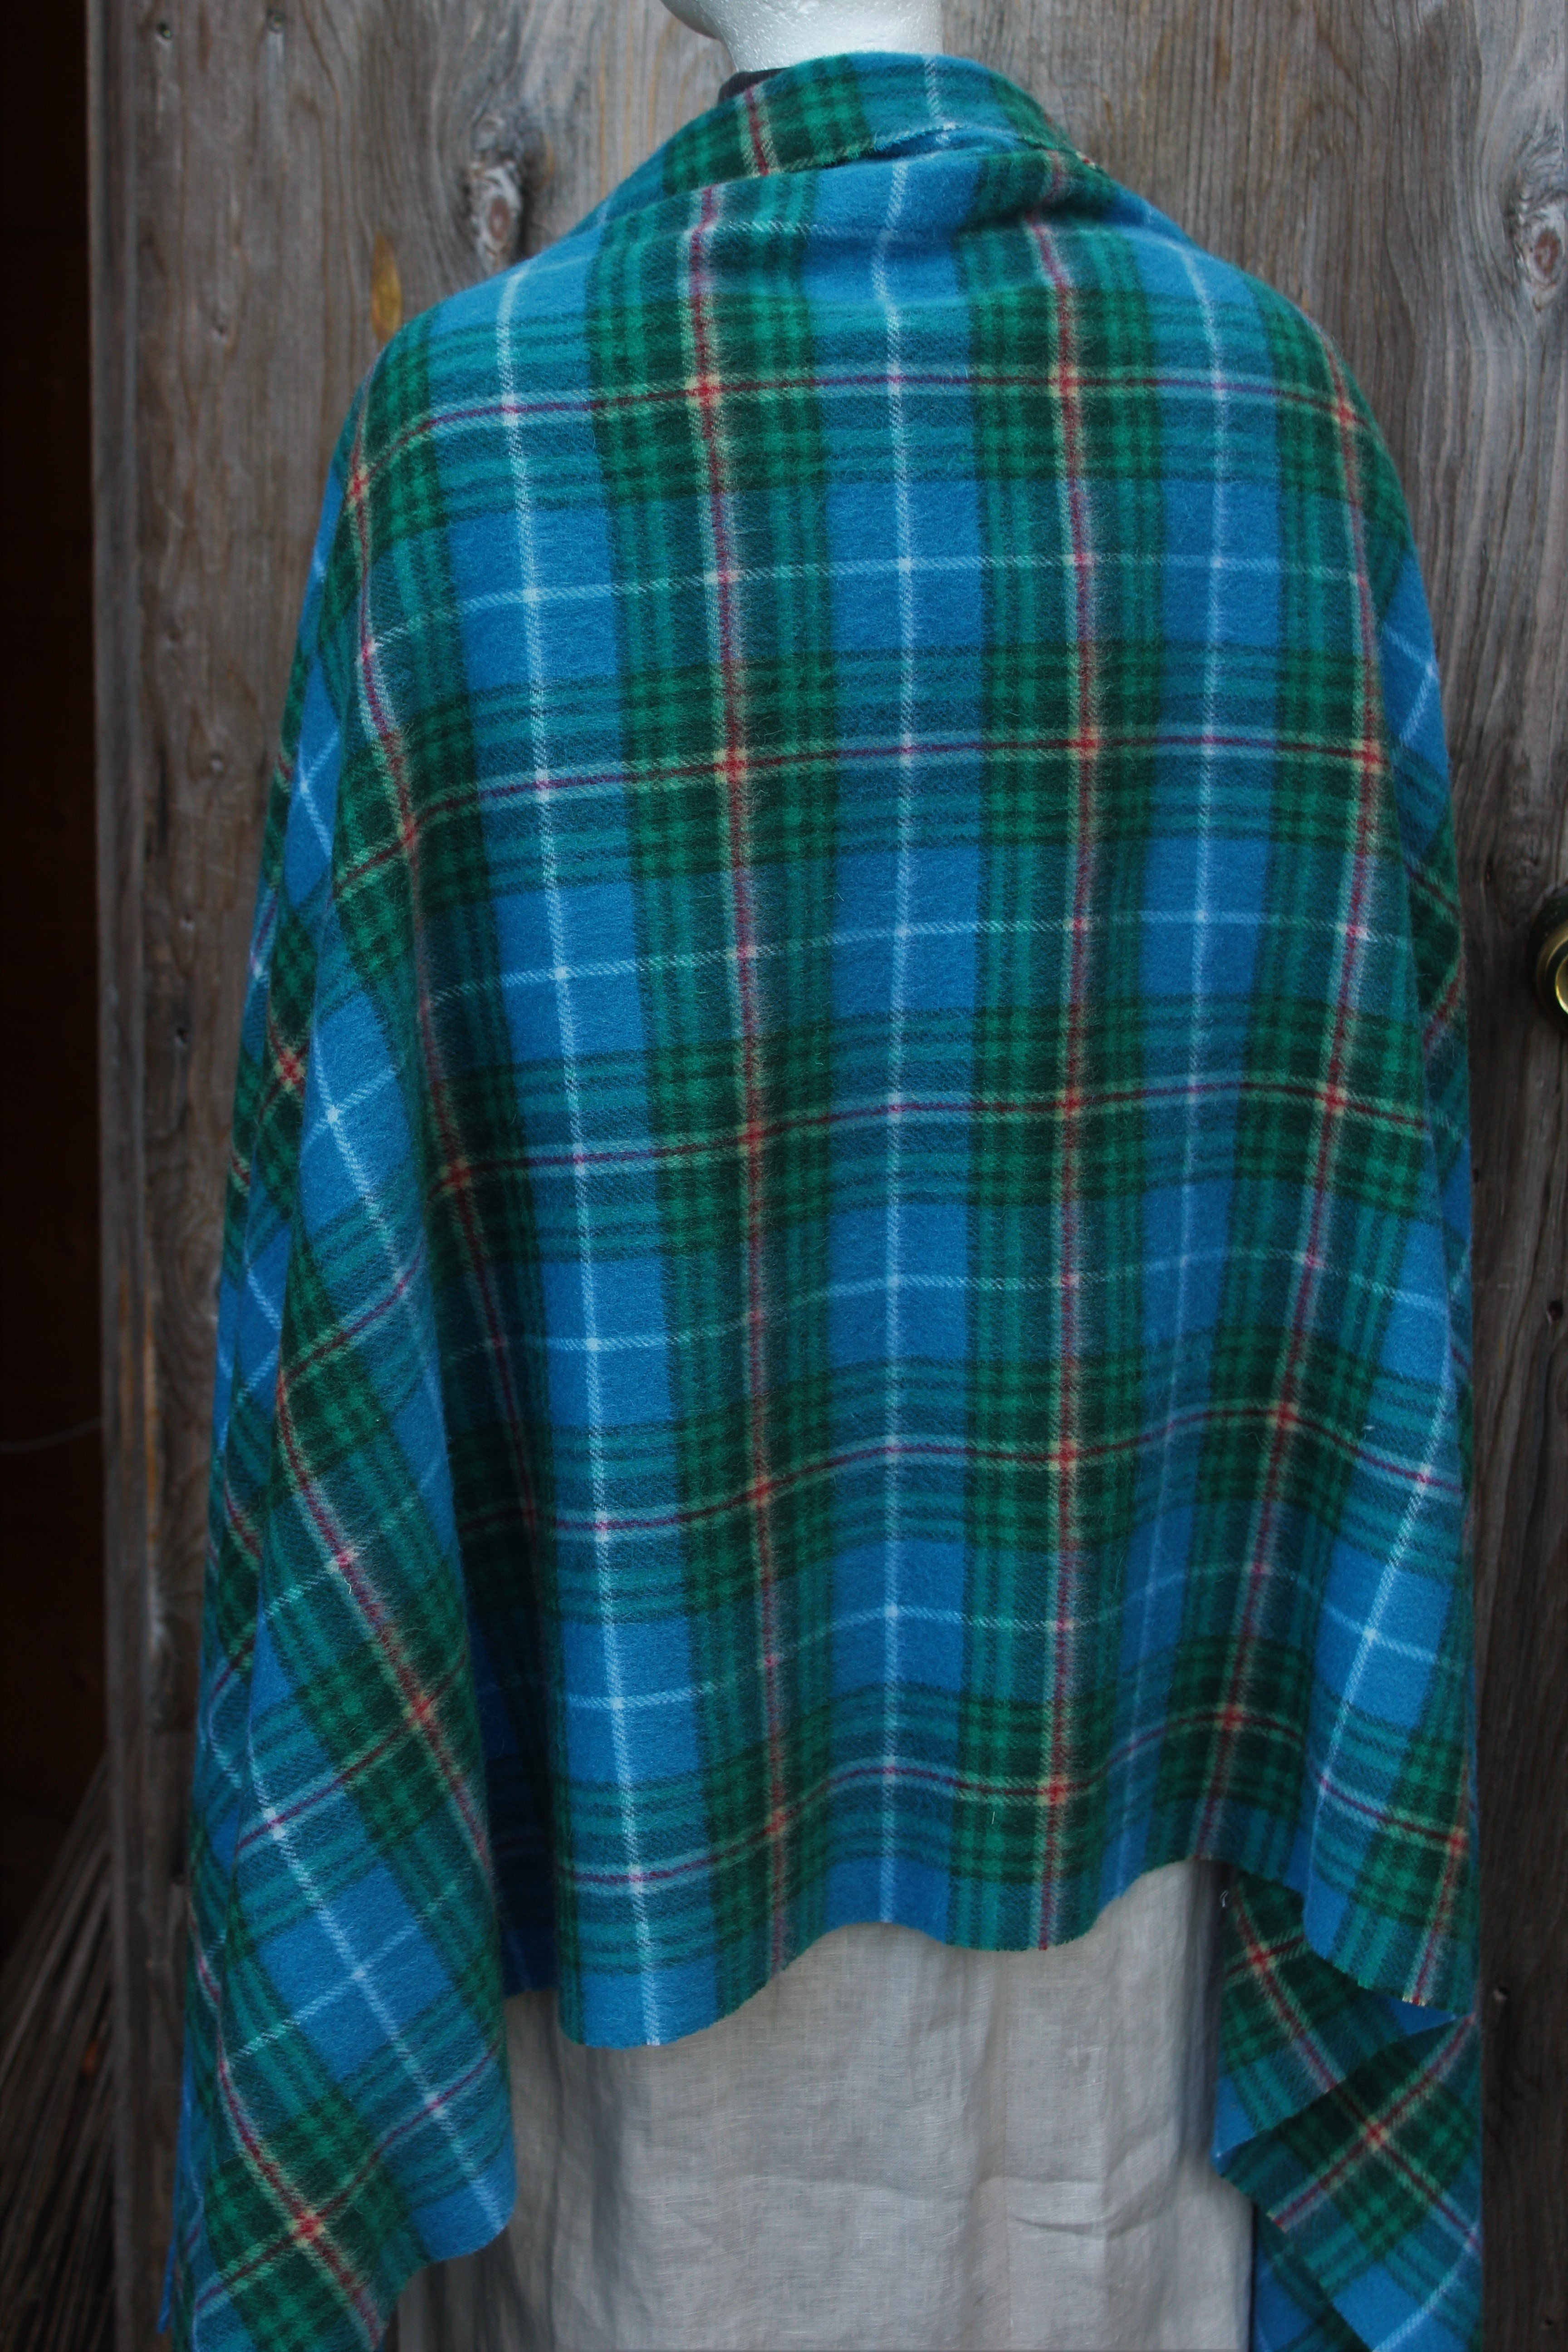 Nova Scotia Tartan Cape- $136.00 100% Lambswool, Made in Scotland